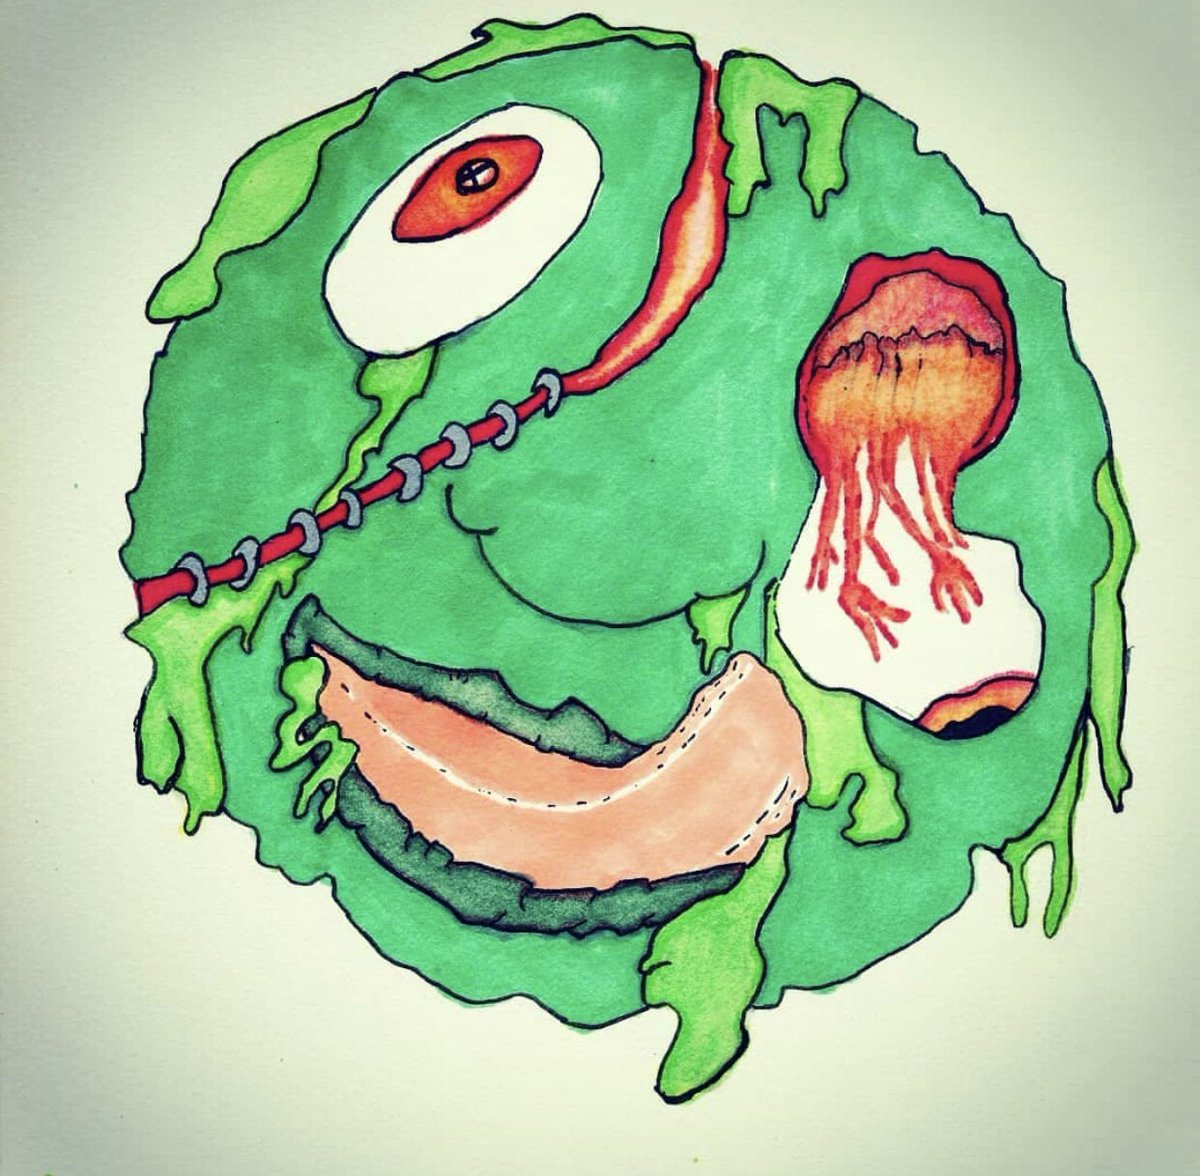 Trying to digitize this slime ball.. till then this is all markers 😑   #art #artist #drawing #toxic #artwork #gross #ArtistOnTwitter #madball #procreate #retro #illustration #digitalart #slime  #happy #California #life #mystery #日本 https://t.co/DSXL7cHNGo